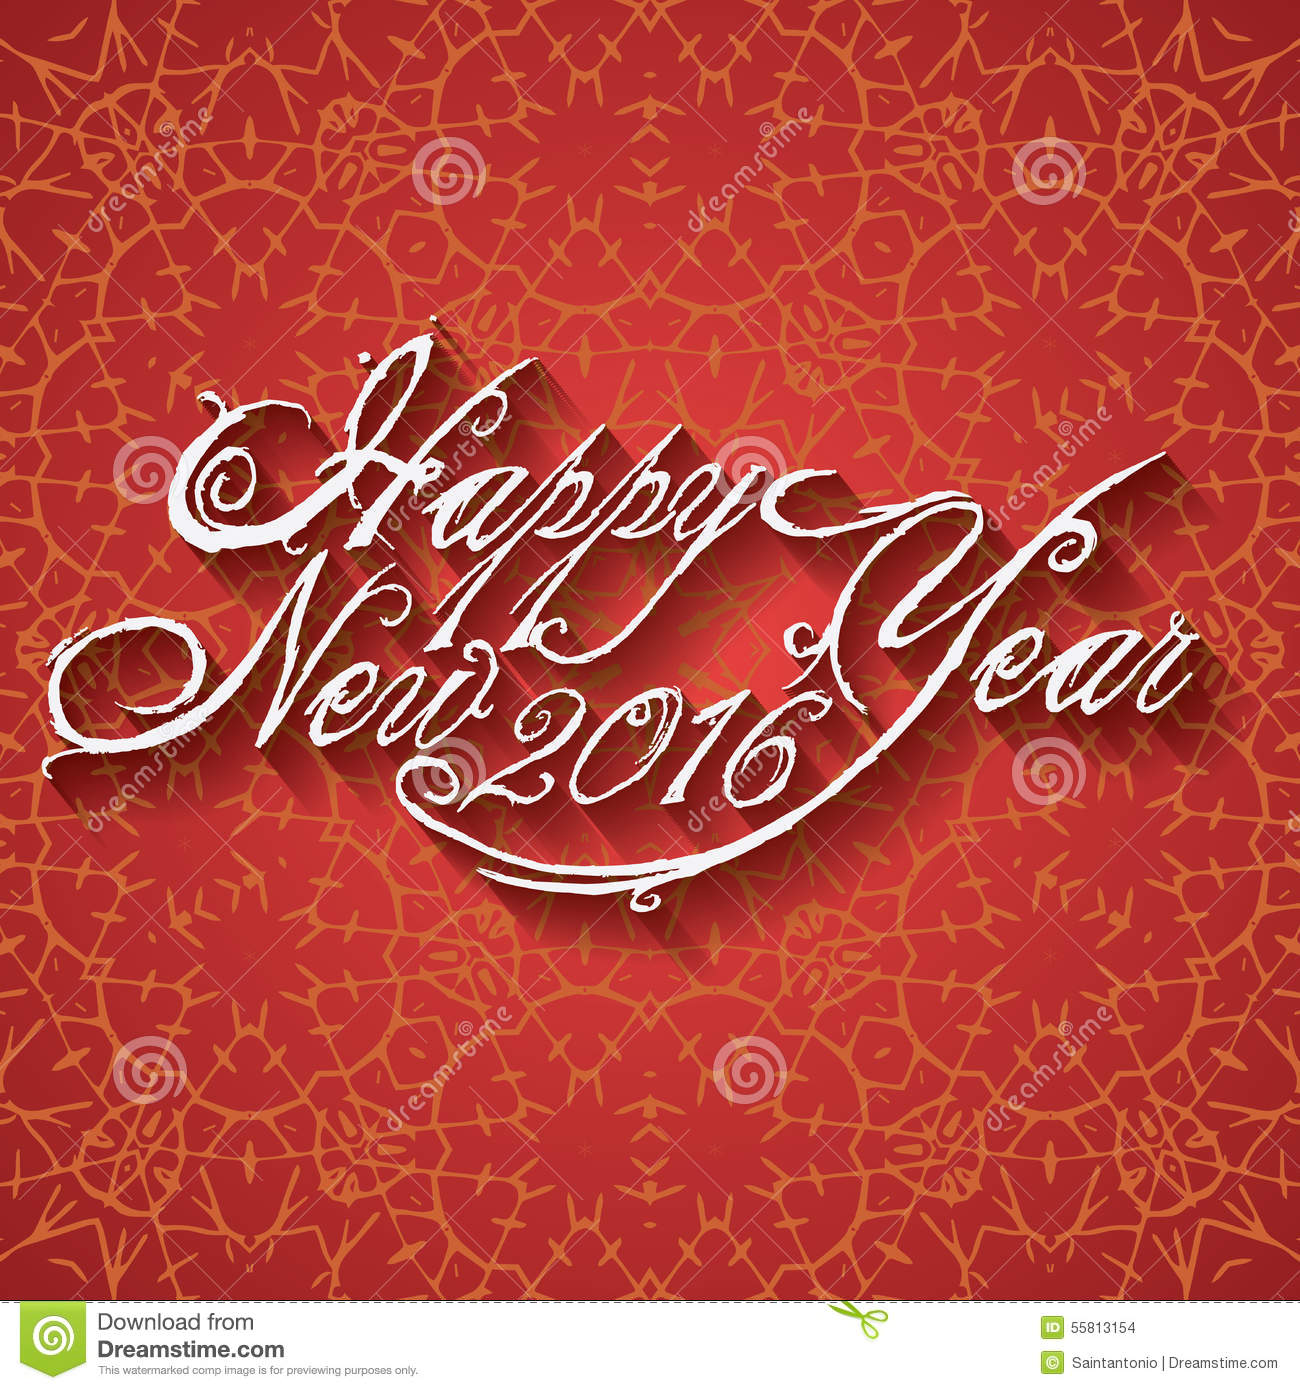 Beautiful elegant text design of happy new year vector beautiful elegant text design of happy new year vector illustration 2016 kristyandbryce Image collections